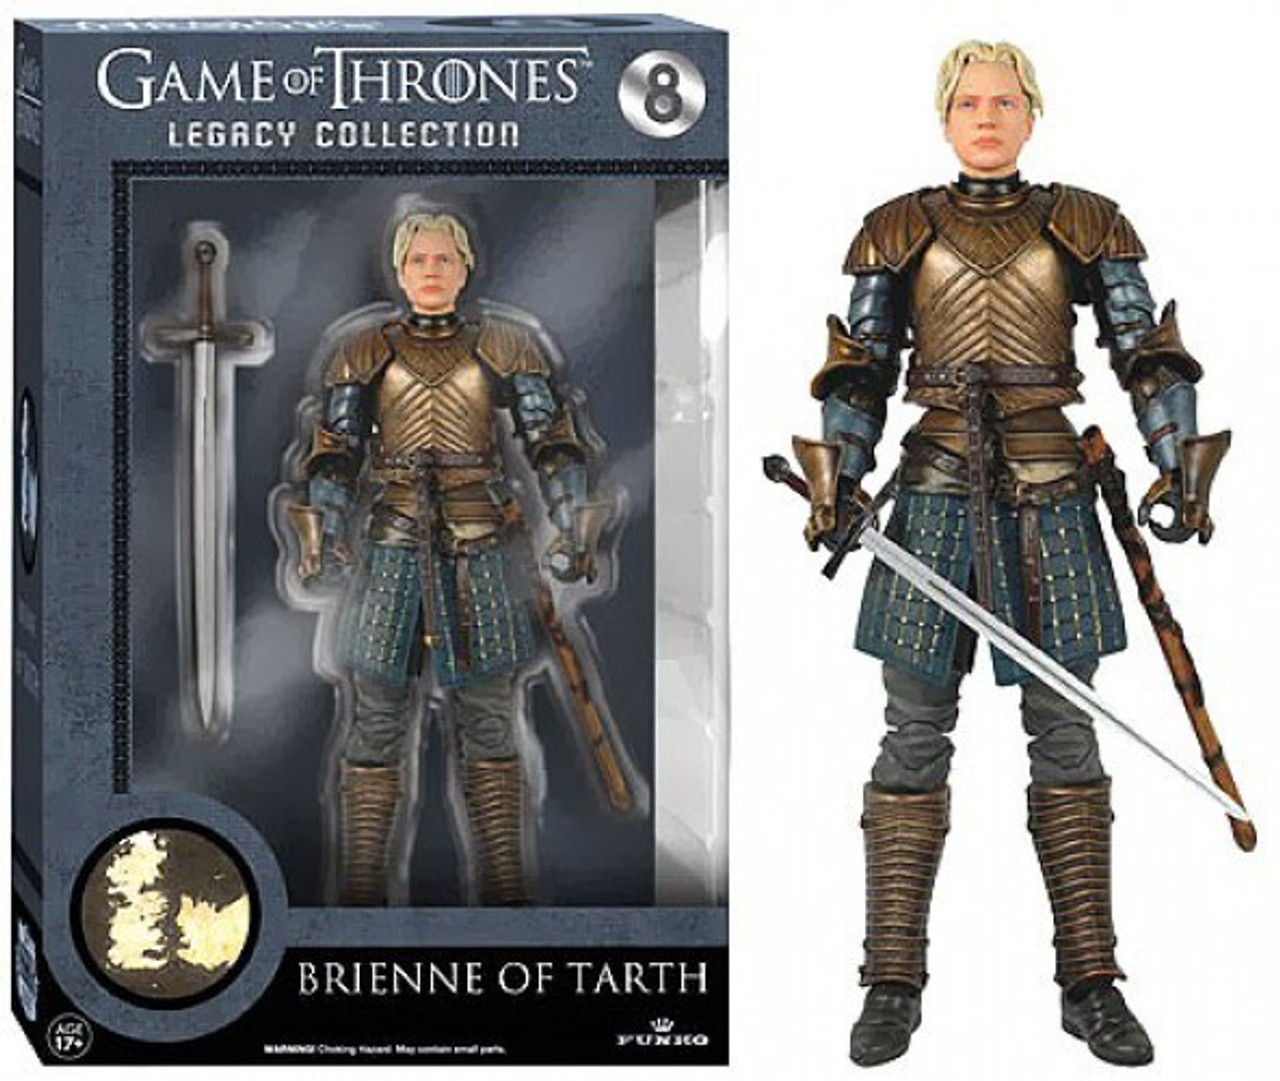 Game of Thrones Brienne of Tarth 7.5-Inch Statue Figure